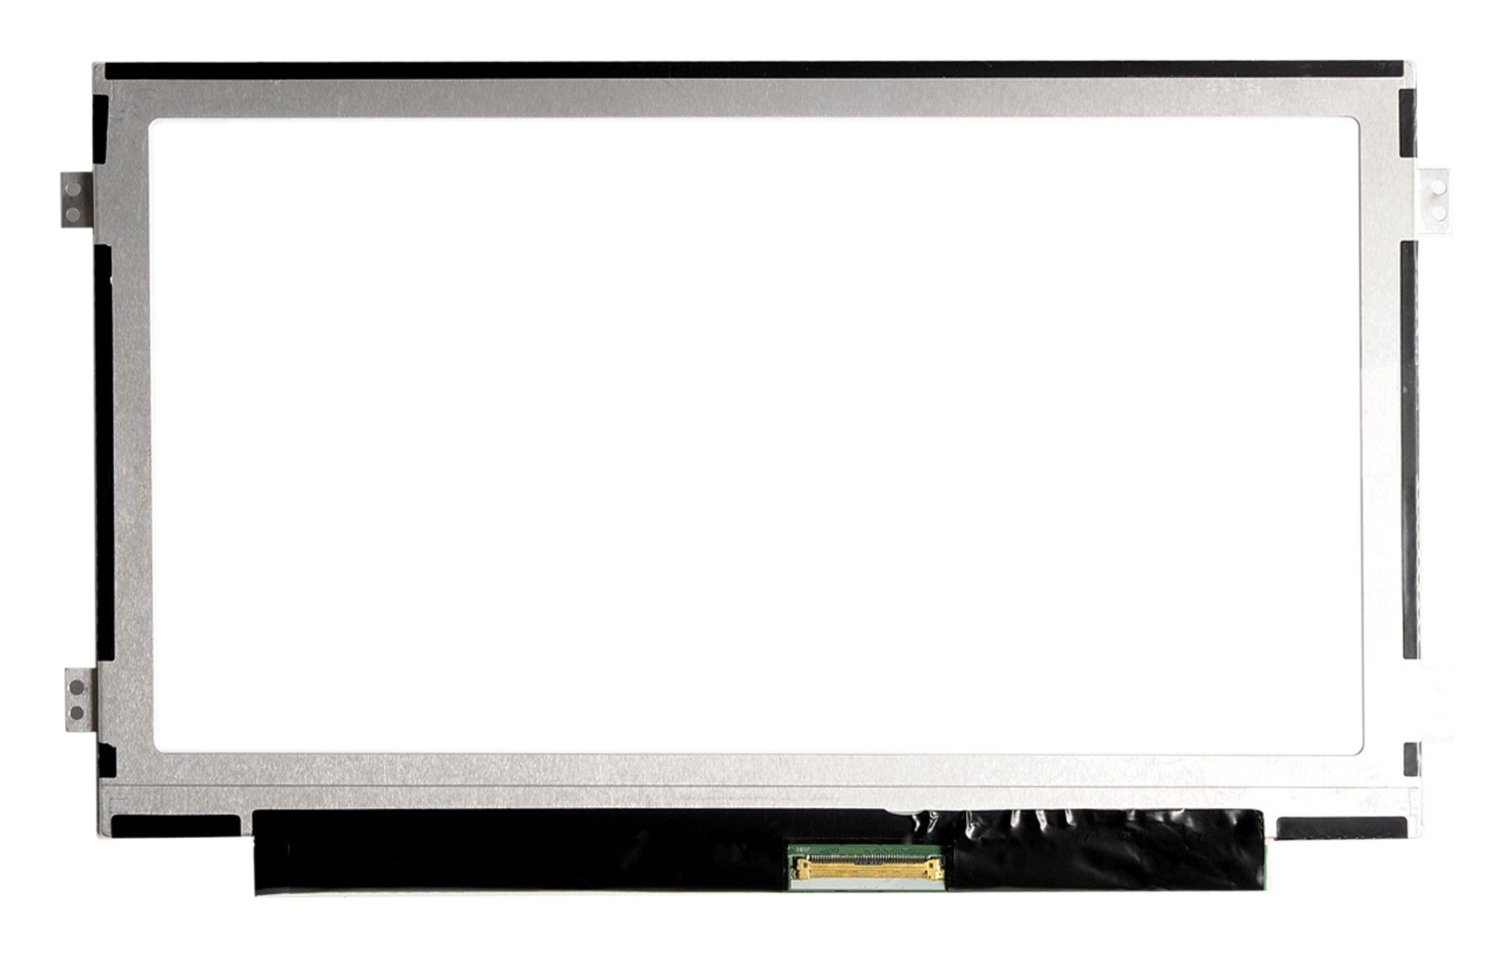 New 10.1 Ultra Slim LED LCD Screen For Acer Apire One AOD257 D257-1802 D257-13473New 10.1 Ultra Slim LED LCD Screen For Acer Apire One AOD257 D257-1802 D257-13473